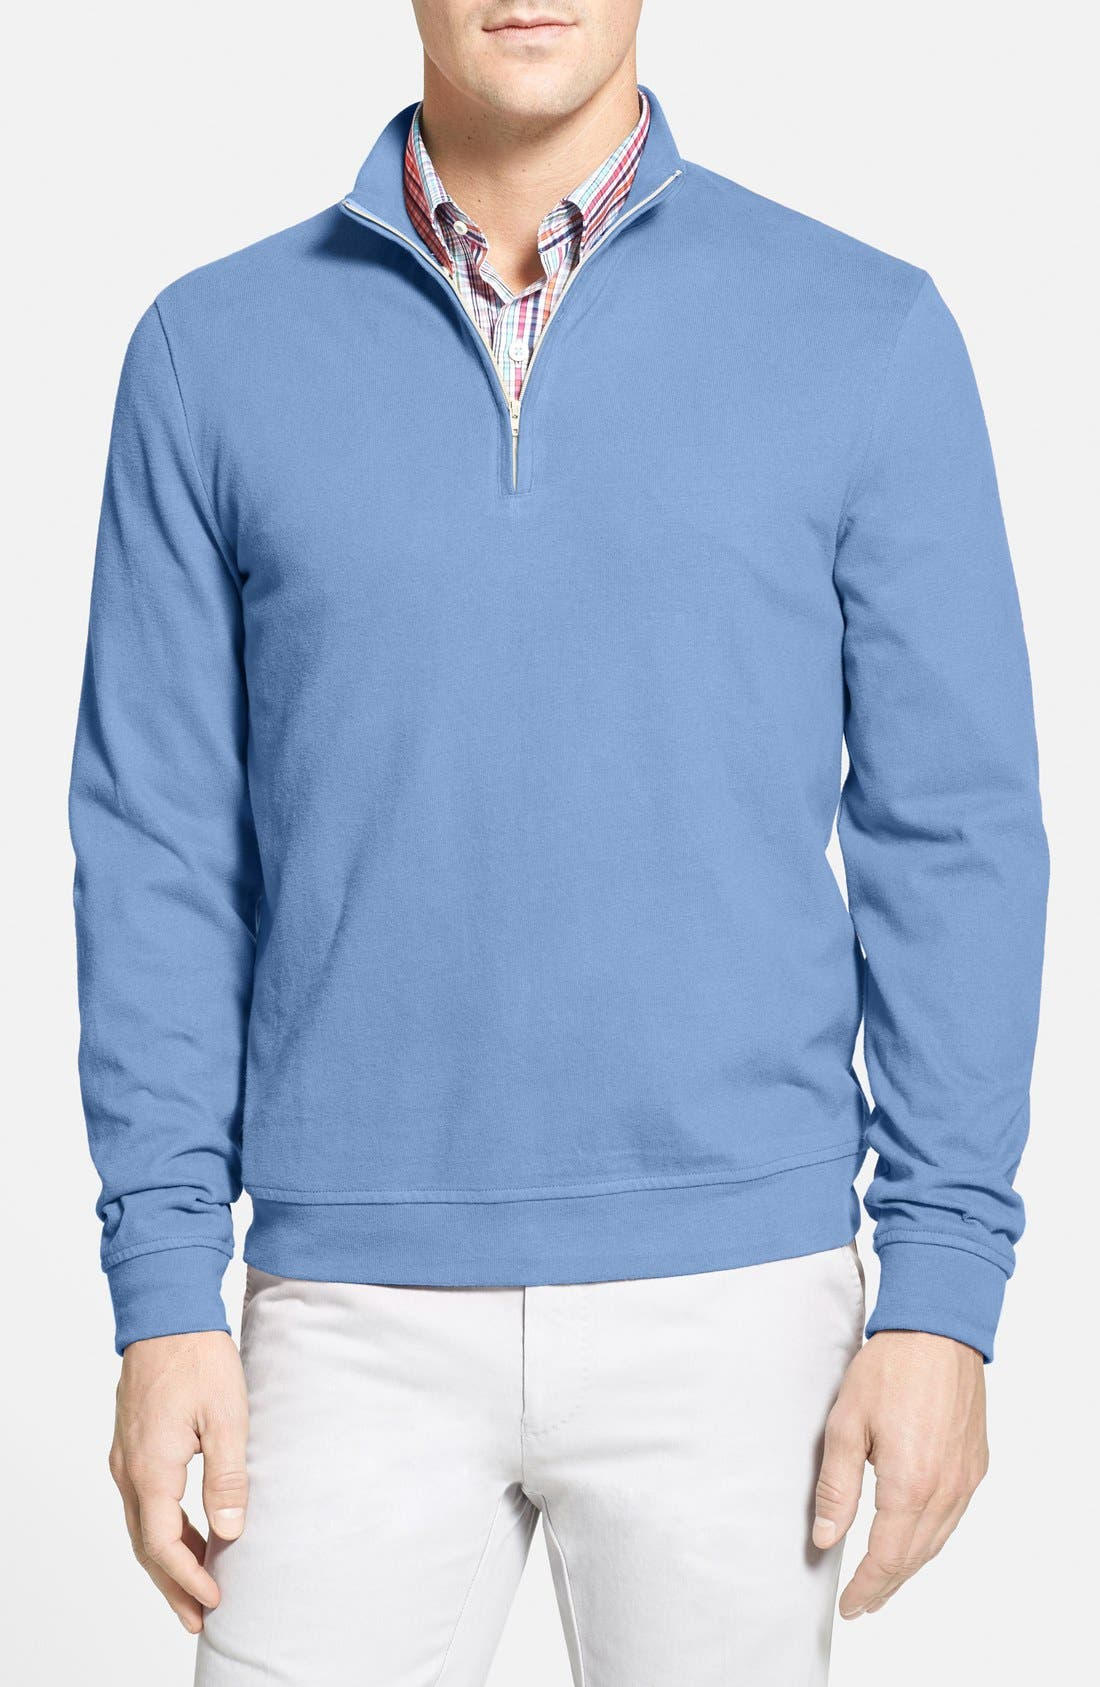 Alternate Image 1 Selected - Nordstrom Quarter Zip Cotton Pullover